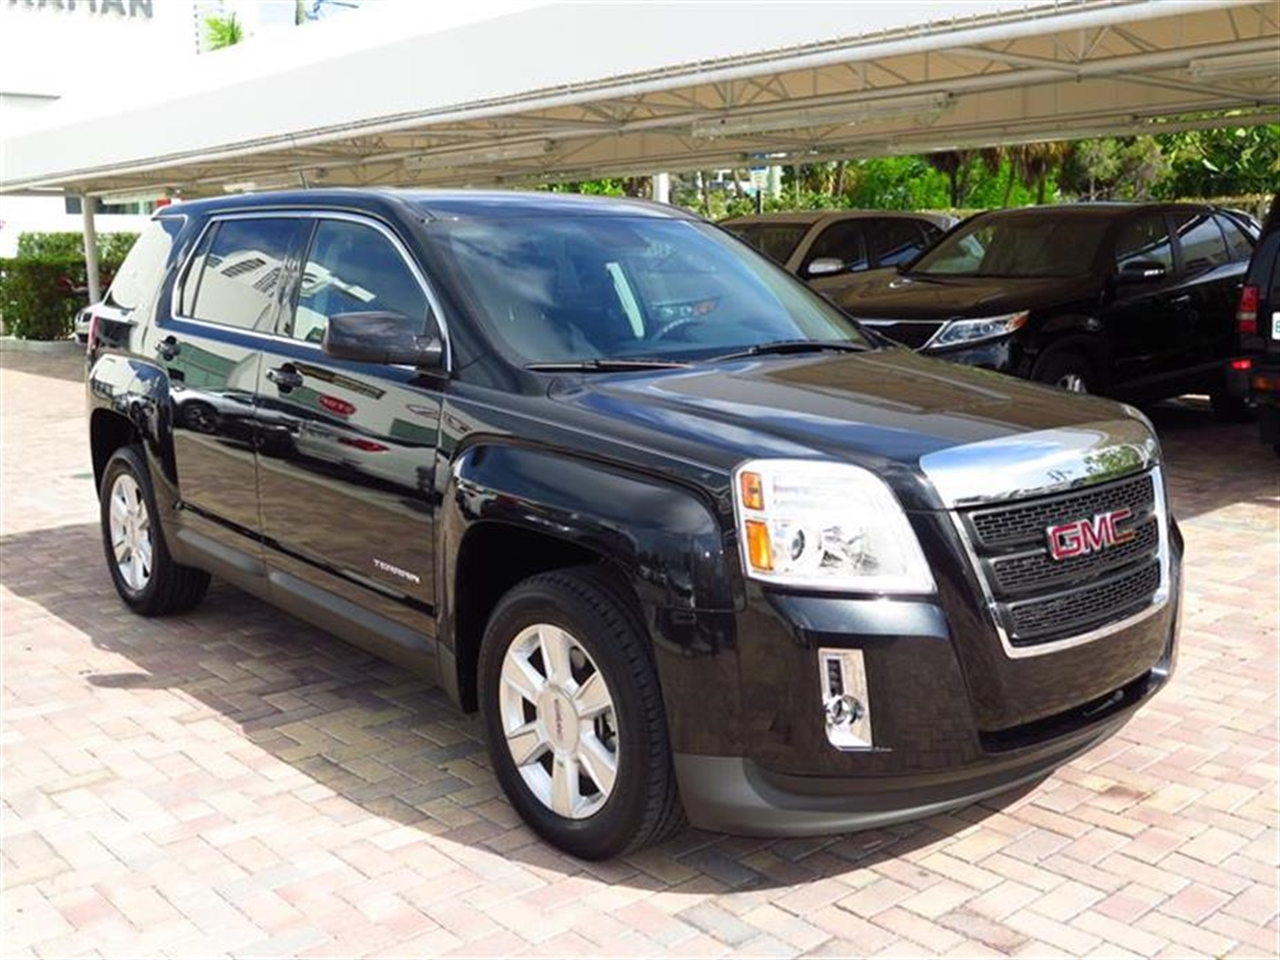 2013 GMC TERRAIN FWD 4dr SLE wSLE-1 28518 miles Air conditioning single-zone manual front clima